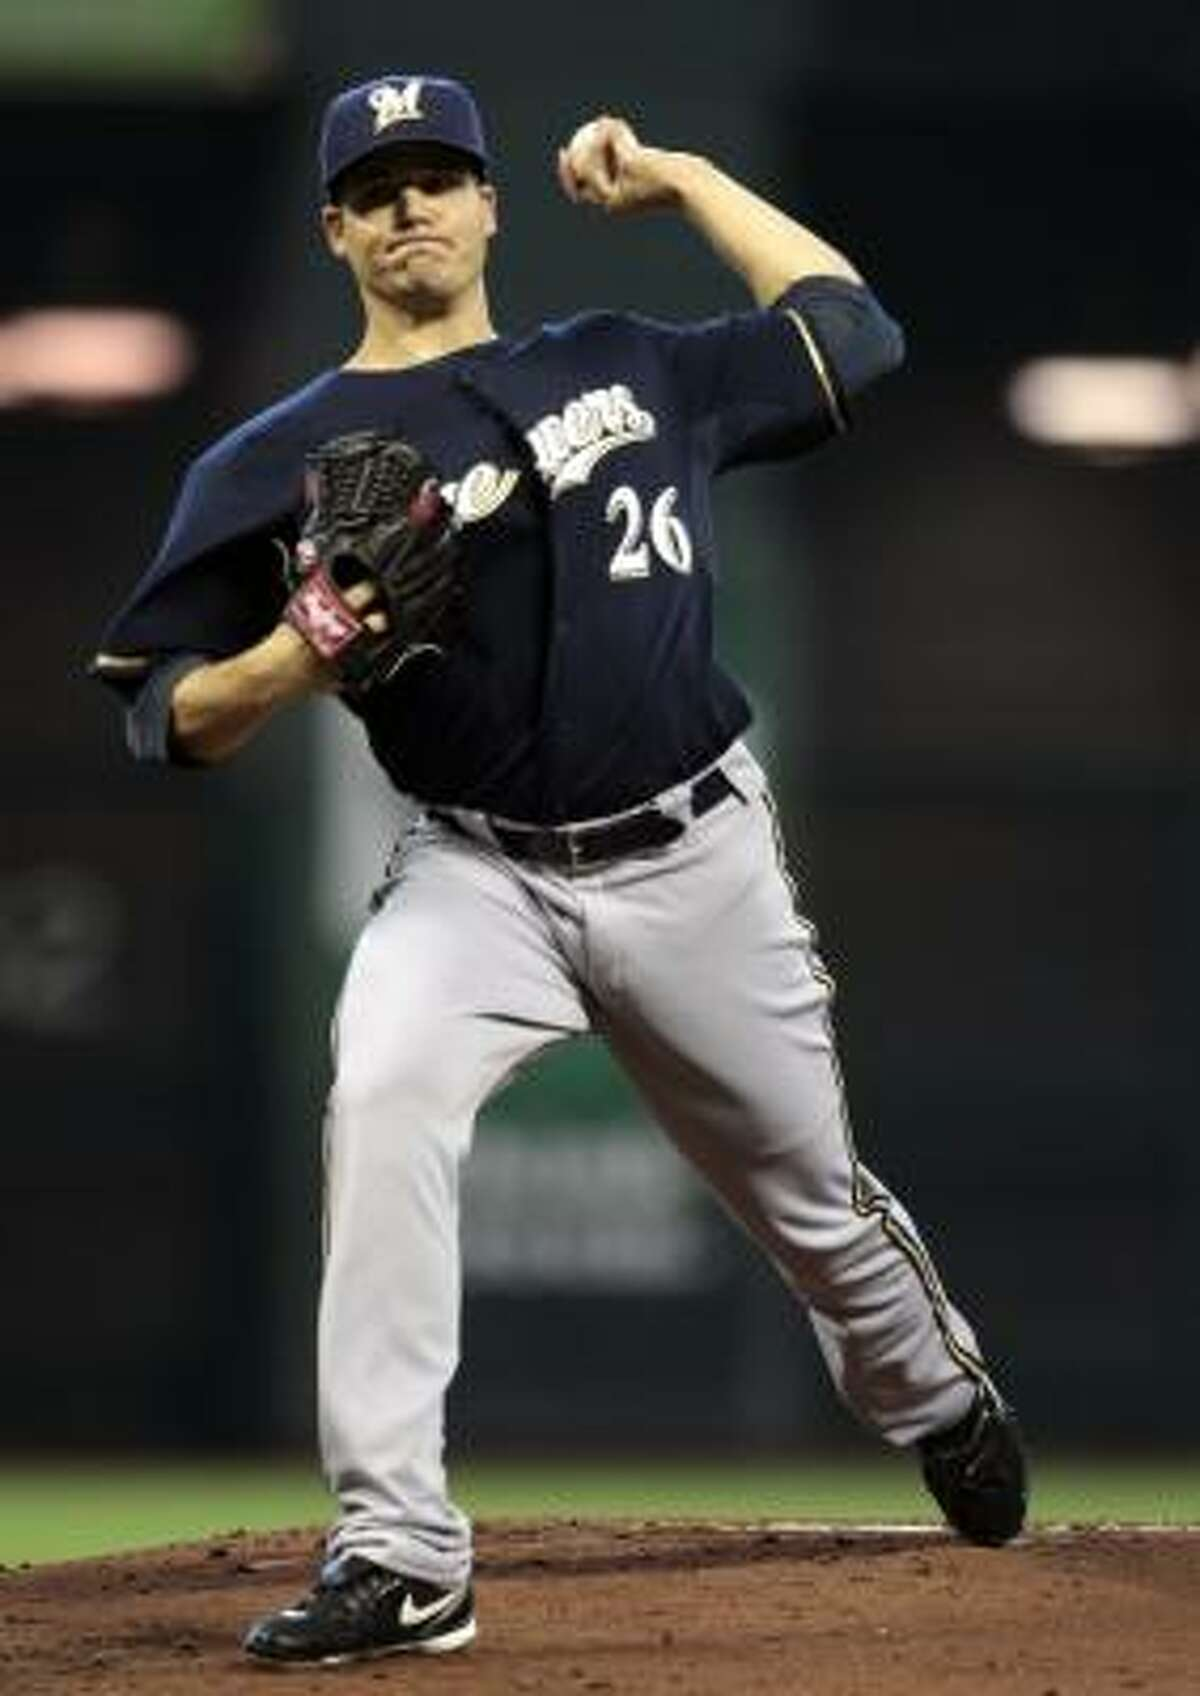 Brewers starter Manny Parra gave up three runs (one earned) in five innings.